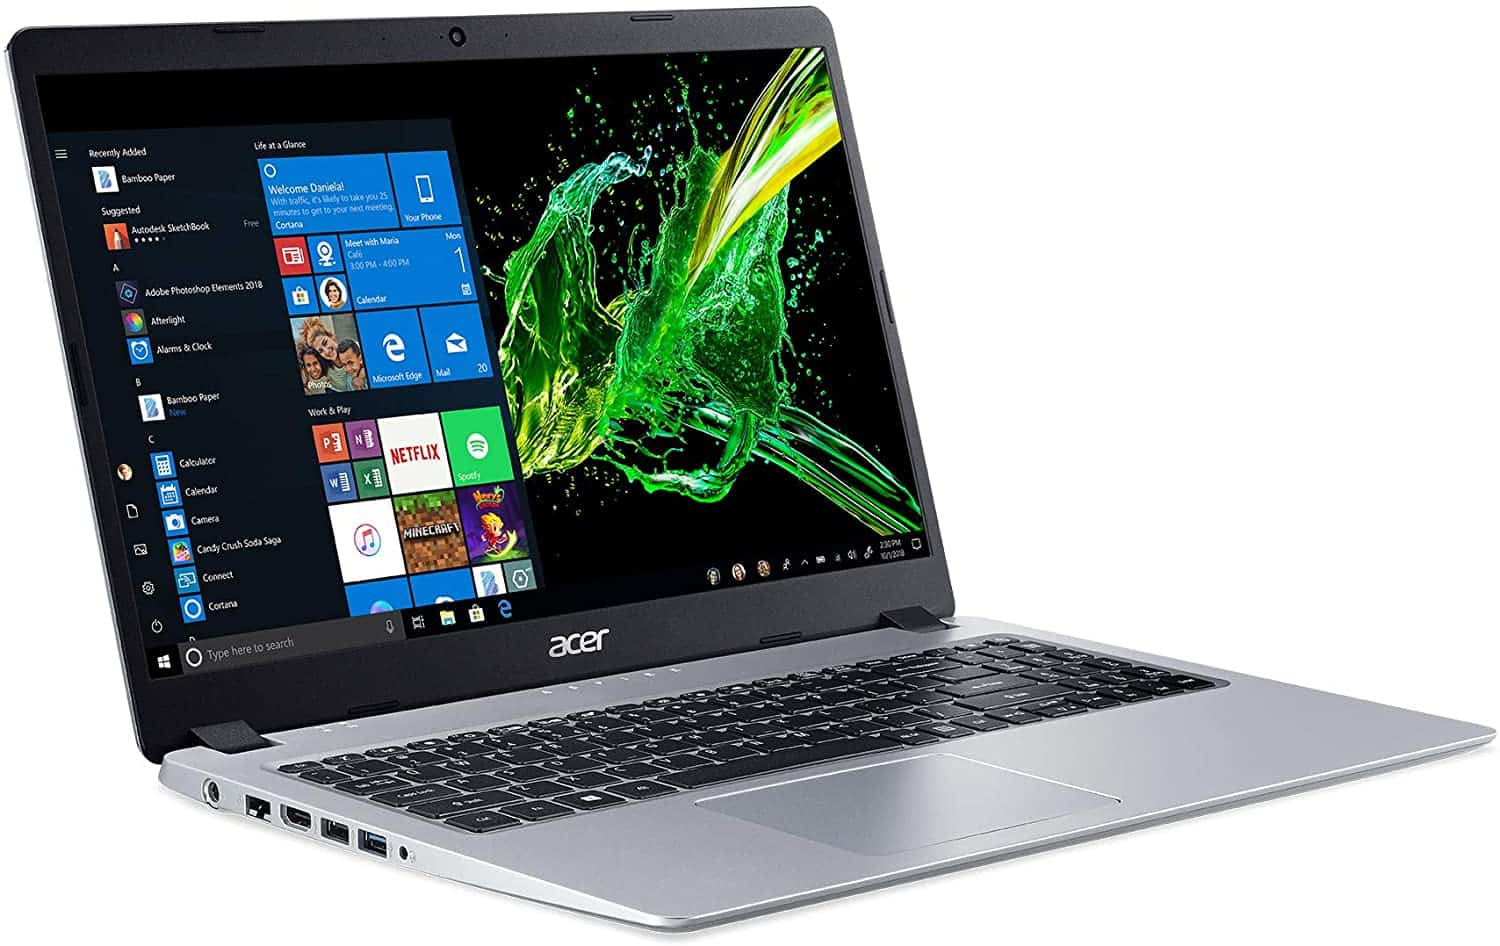 Image of Acer Aspire recommended as best laptop for medical school